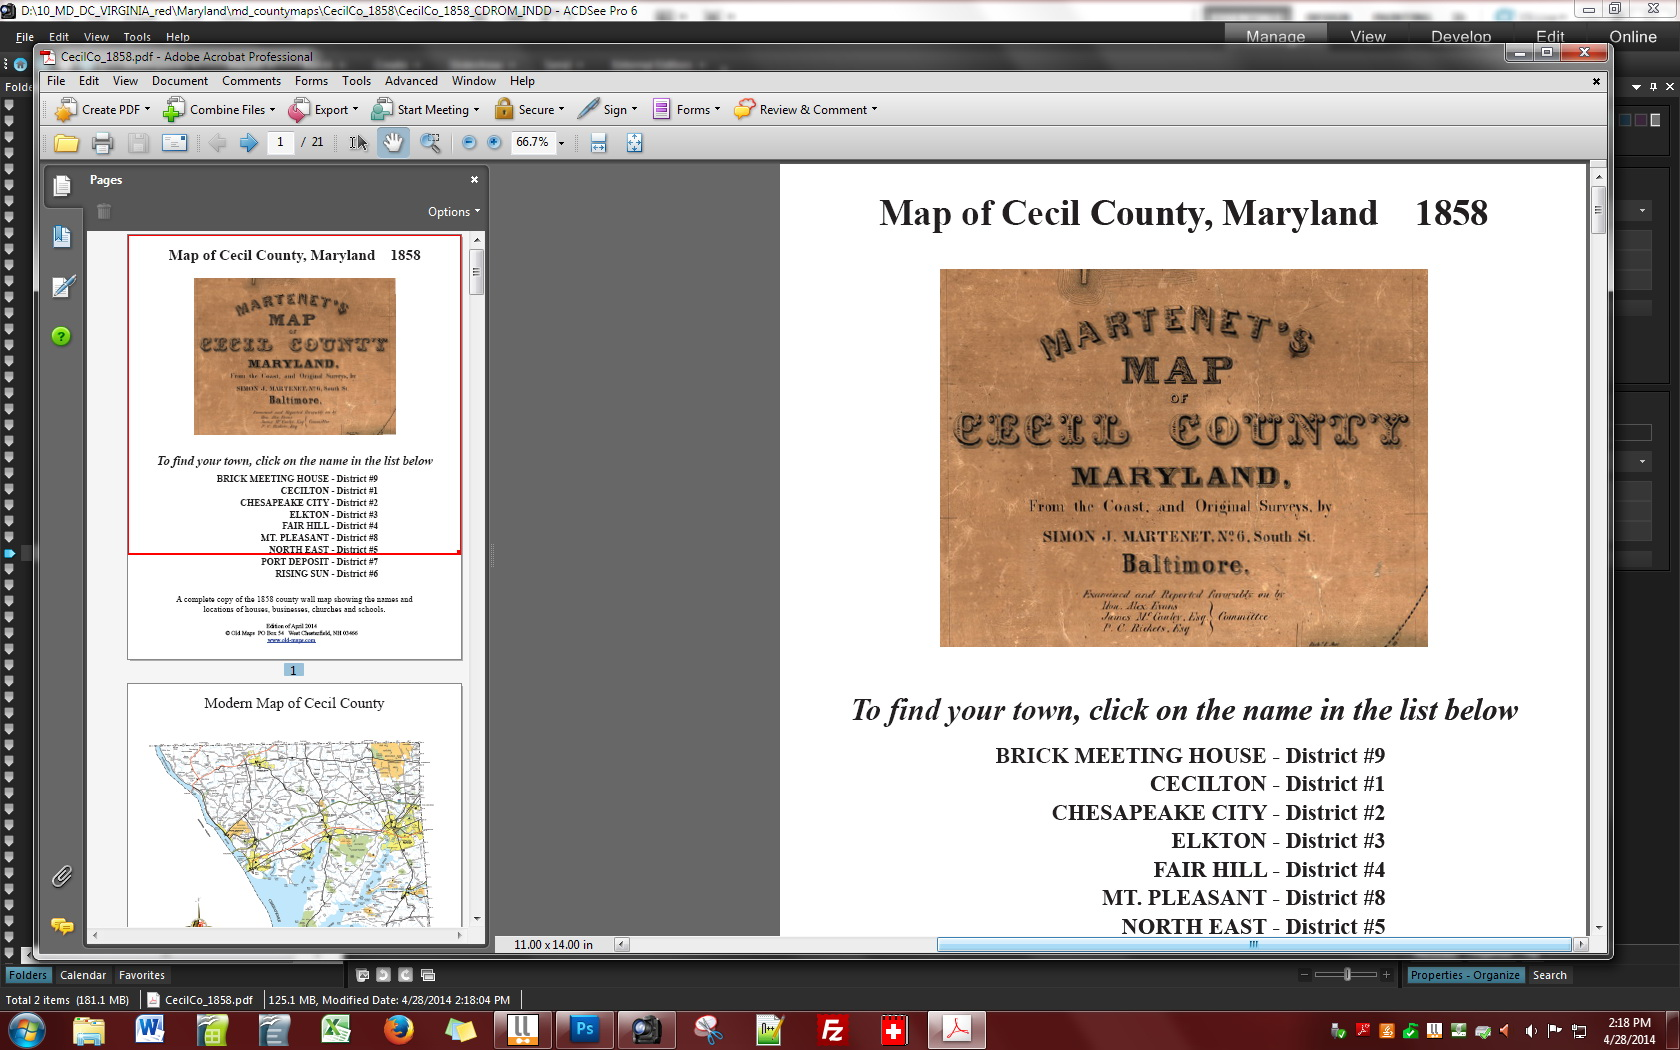 Cecil County Maryland 1858 - CDROM details